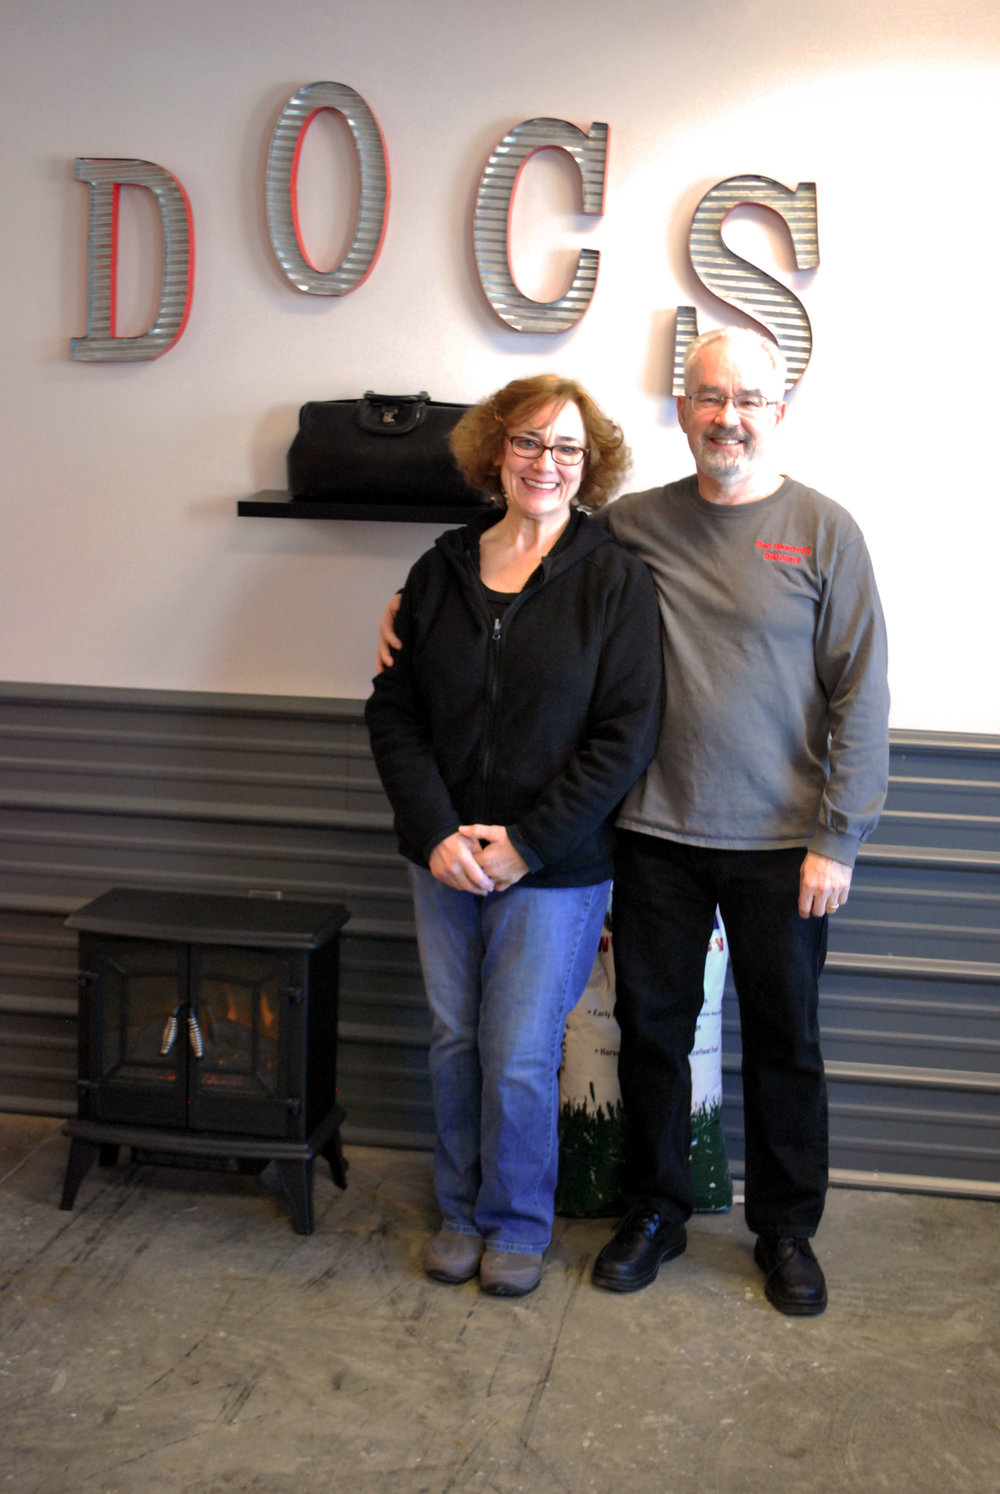 Ken and Sherri Howard welcome you to their distillery!